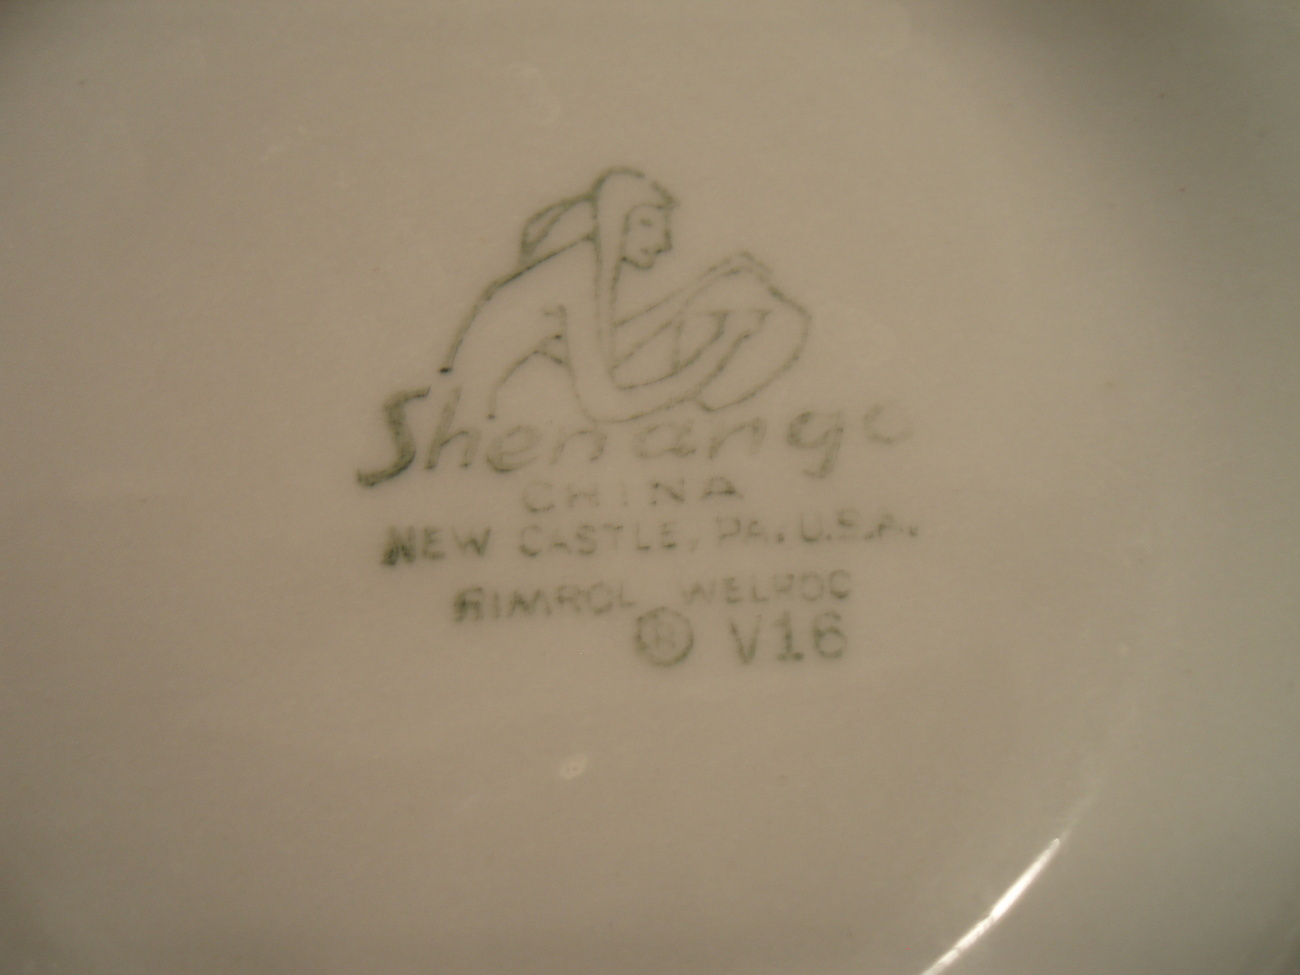 Image 3 of Shenango China cereal bowl Lawrence V16 restaurant ware